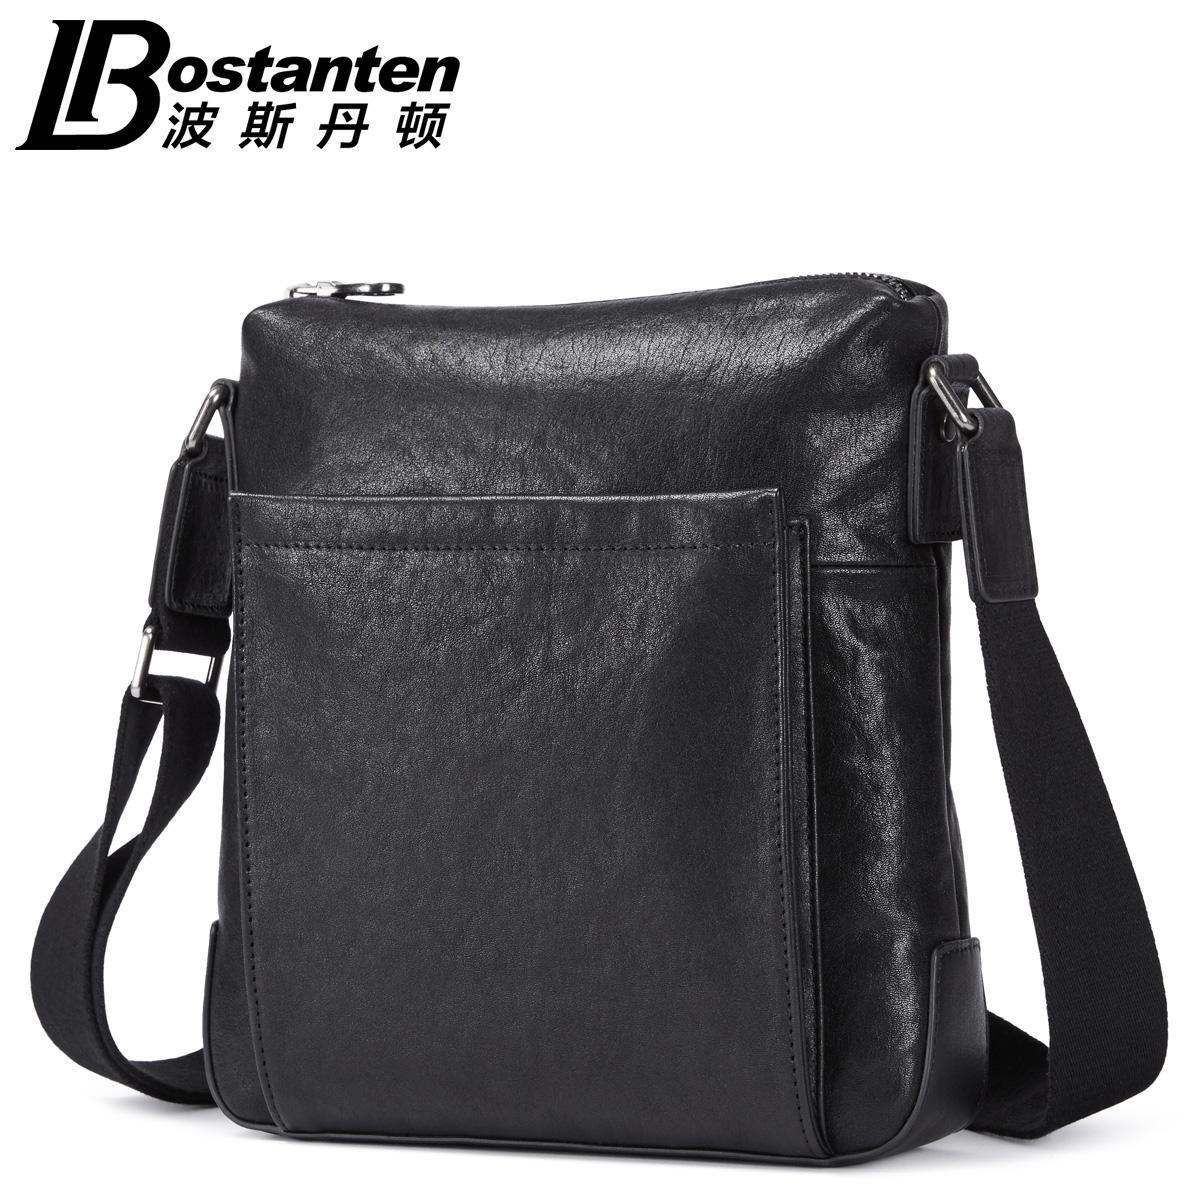 Bostanten Cow Real Genuine Leather Men S Bags Messenger Bags Small Business  Male Briefcase Travel Crossbody Shoulder Bag Handbag Cheap Handbags  Handbags For ... a03ff4f3331d5